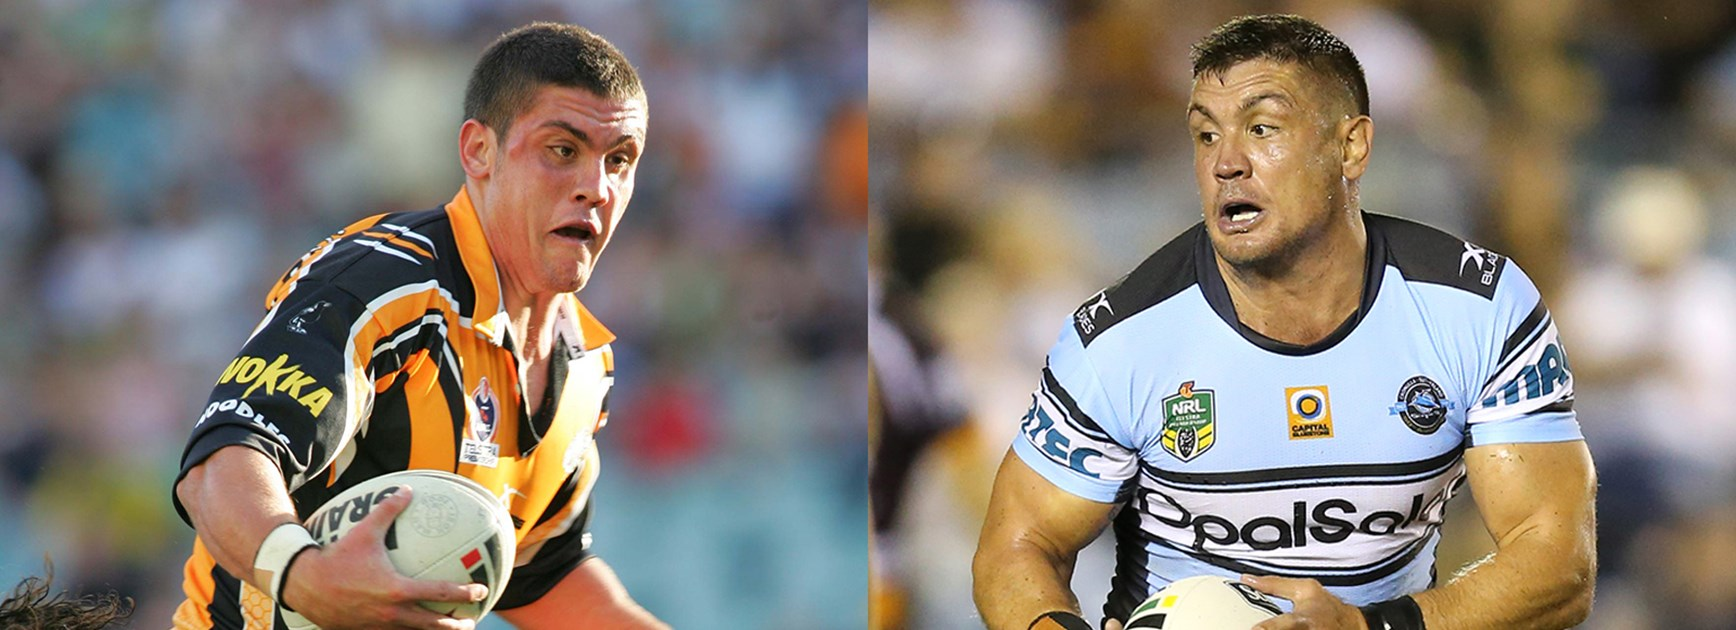 Chris Heighington is set to become the 26th player to reach the 300 NRL games milestone.